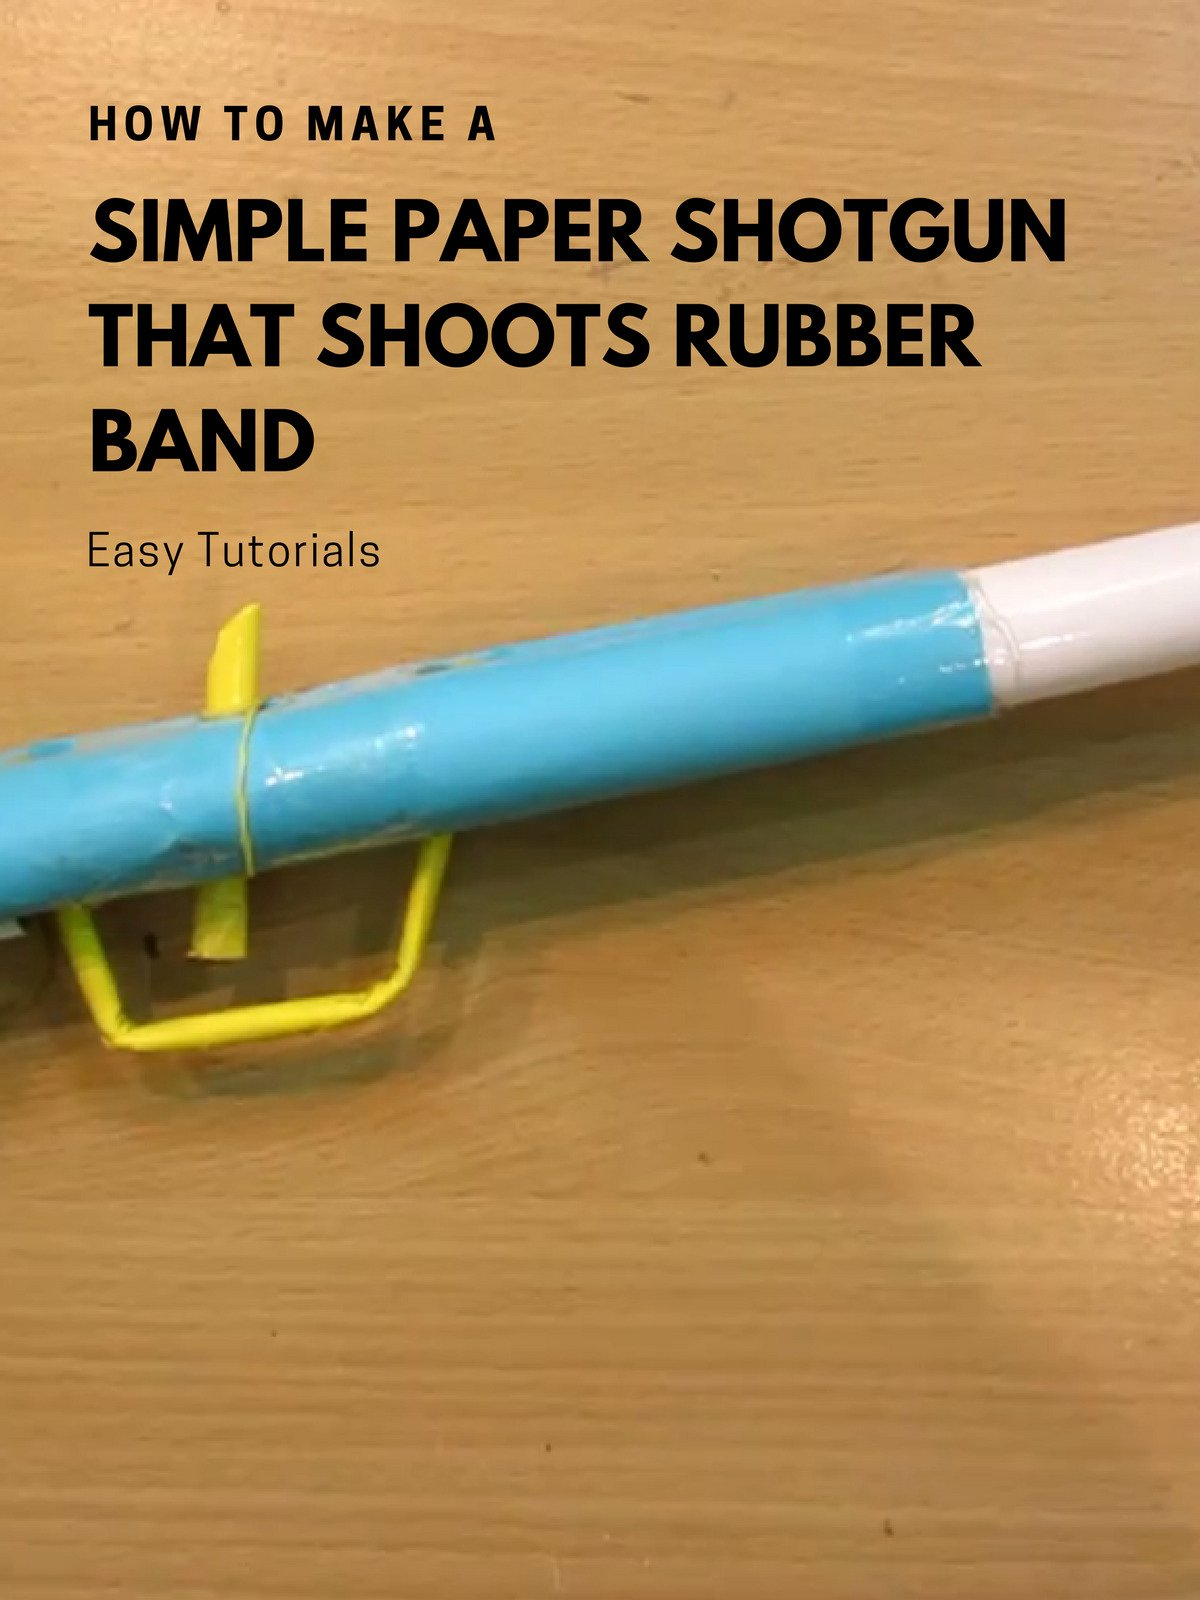 How to Make a Simple Paper Shotgun that Shoots rubber band on Amazon Prime Video UK